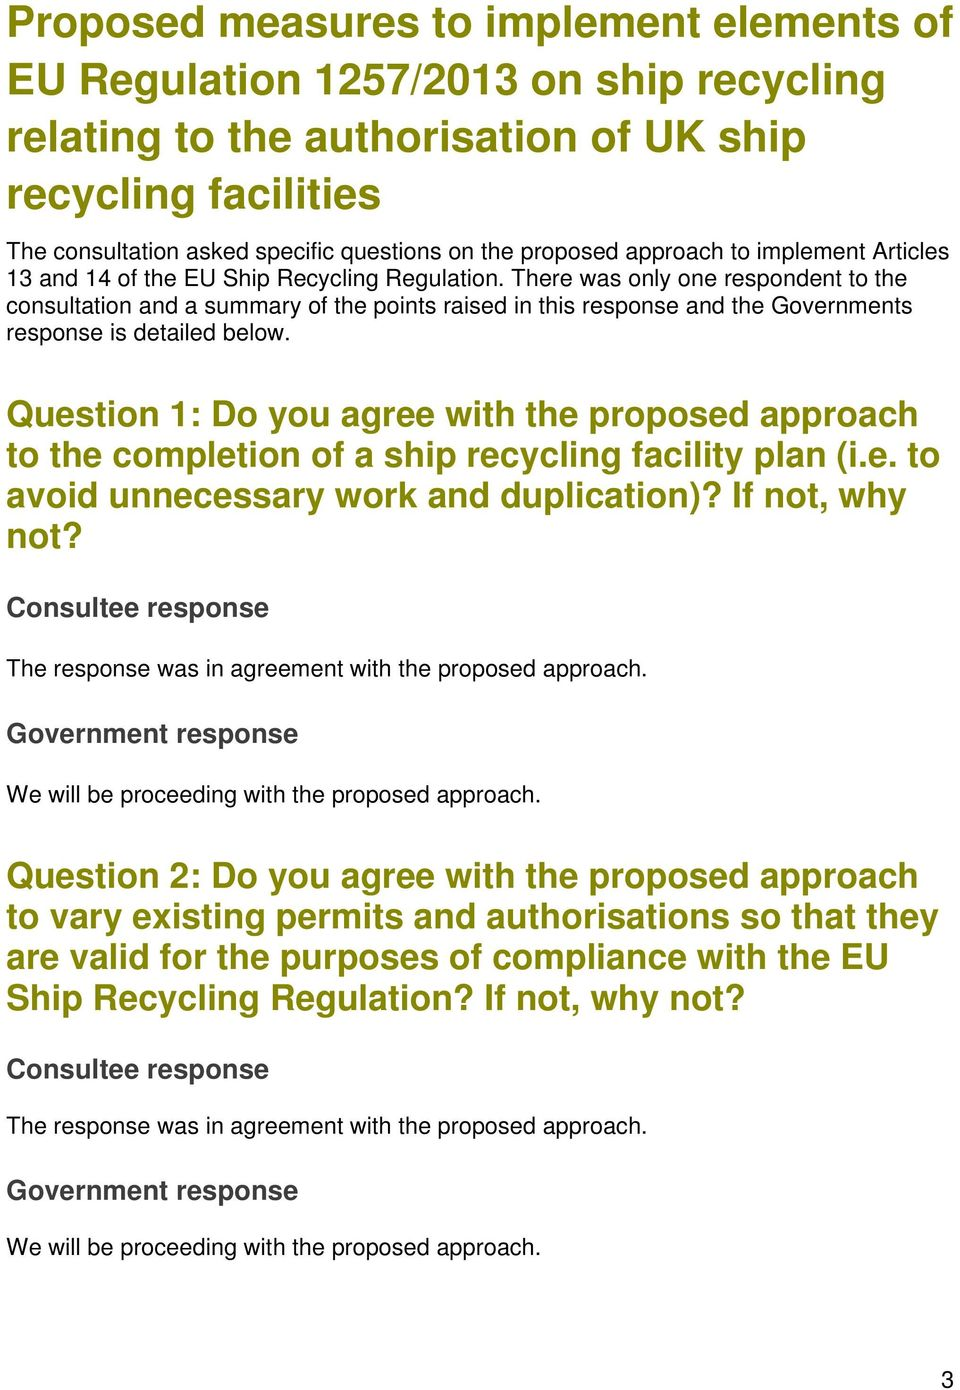 There was only one respondent to the consultation and a summary of the points raised in this response and the Governments response is detailed below.